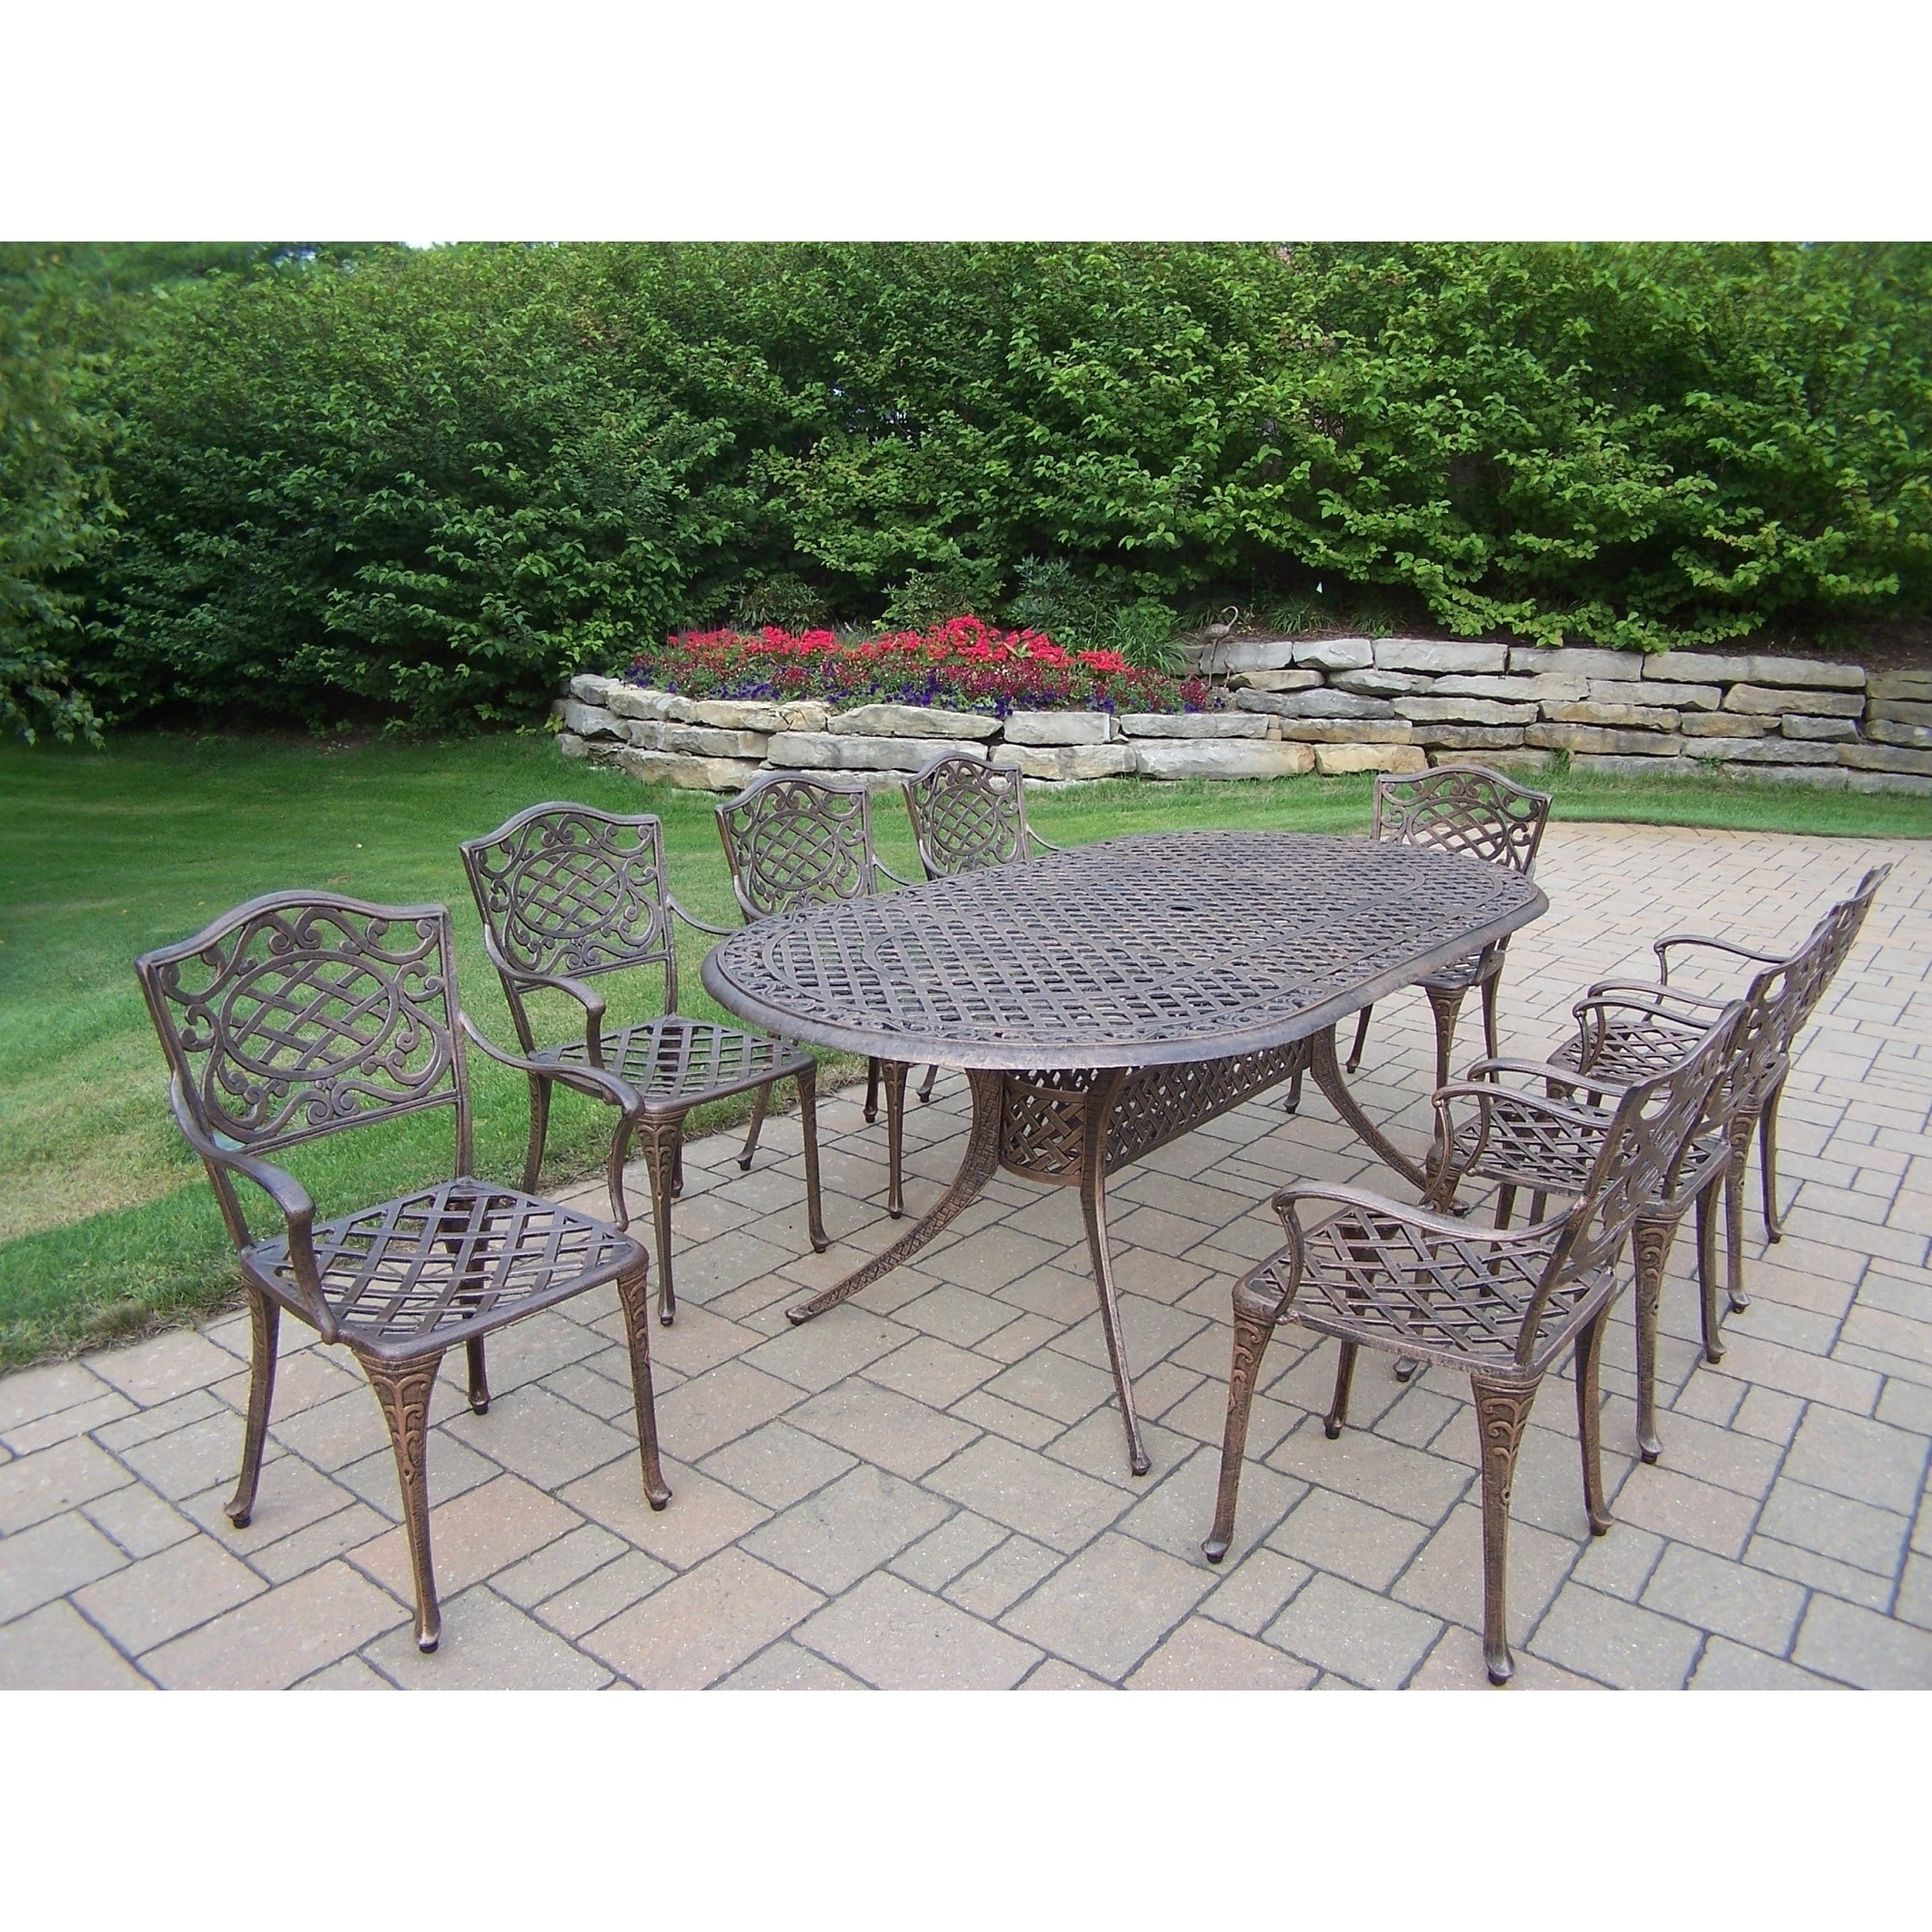 9 Piece Outdoor Dining Set Dakota Cast Aluminum 9 Piece Outdoor Dining Set